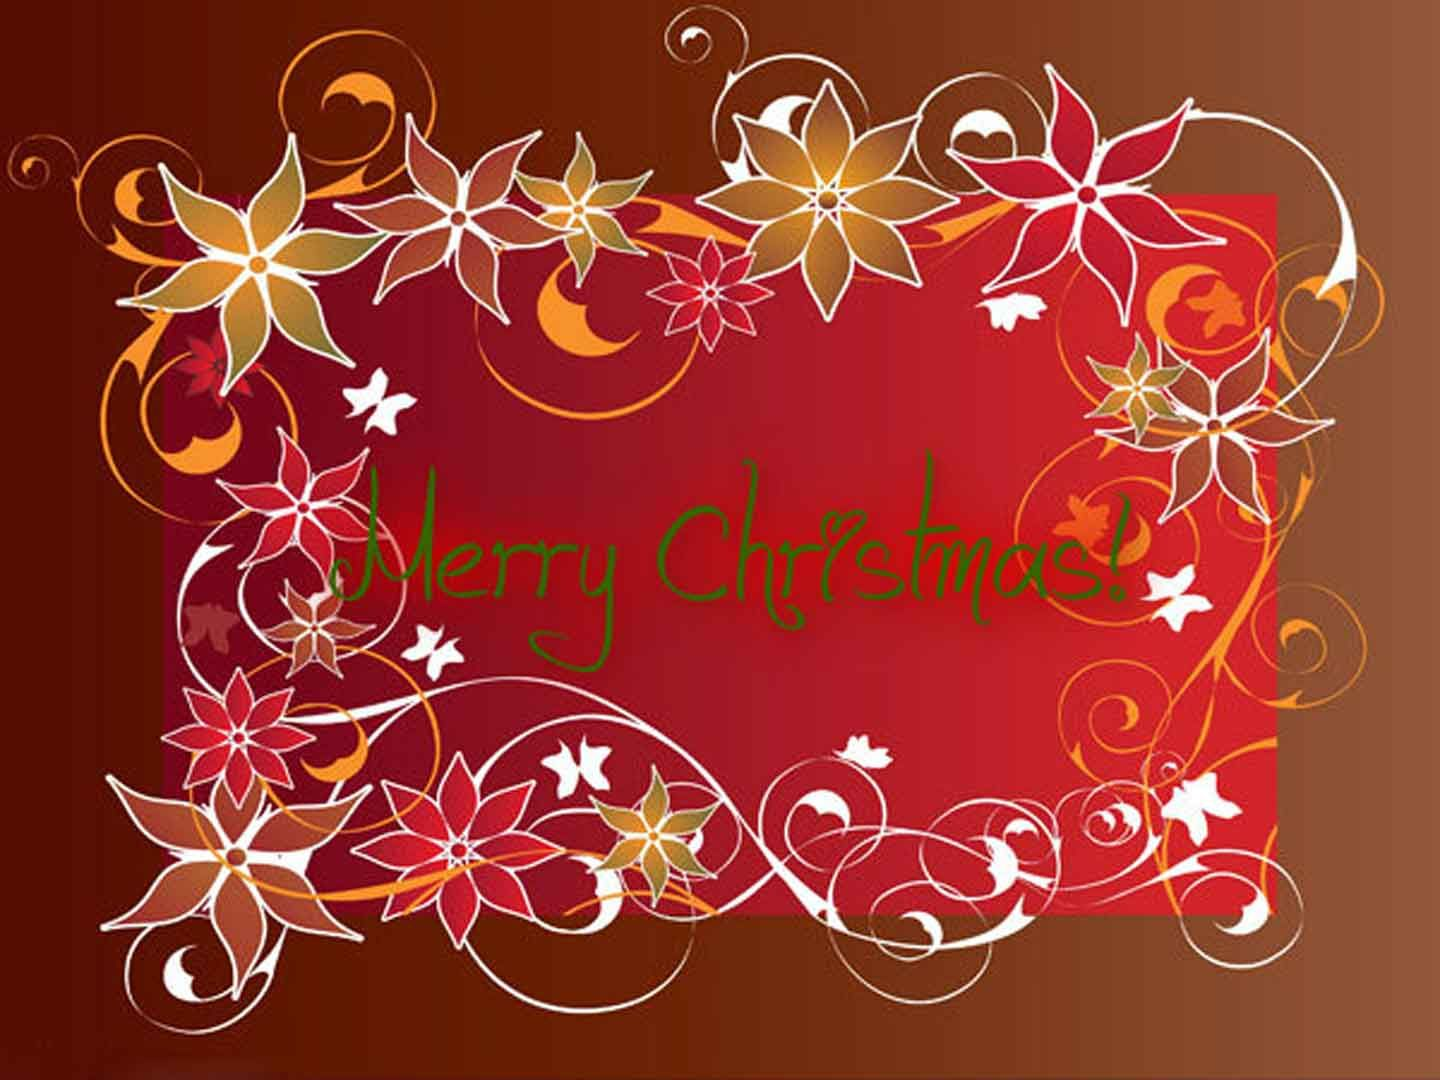 Christmas cards merry christmas quotes wishes pinterest merry christmas cards kristyandbryce Choice Image